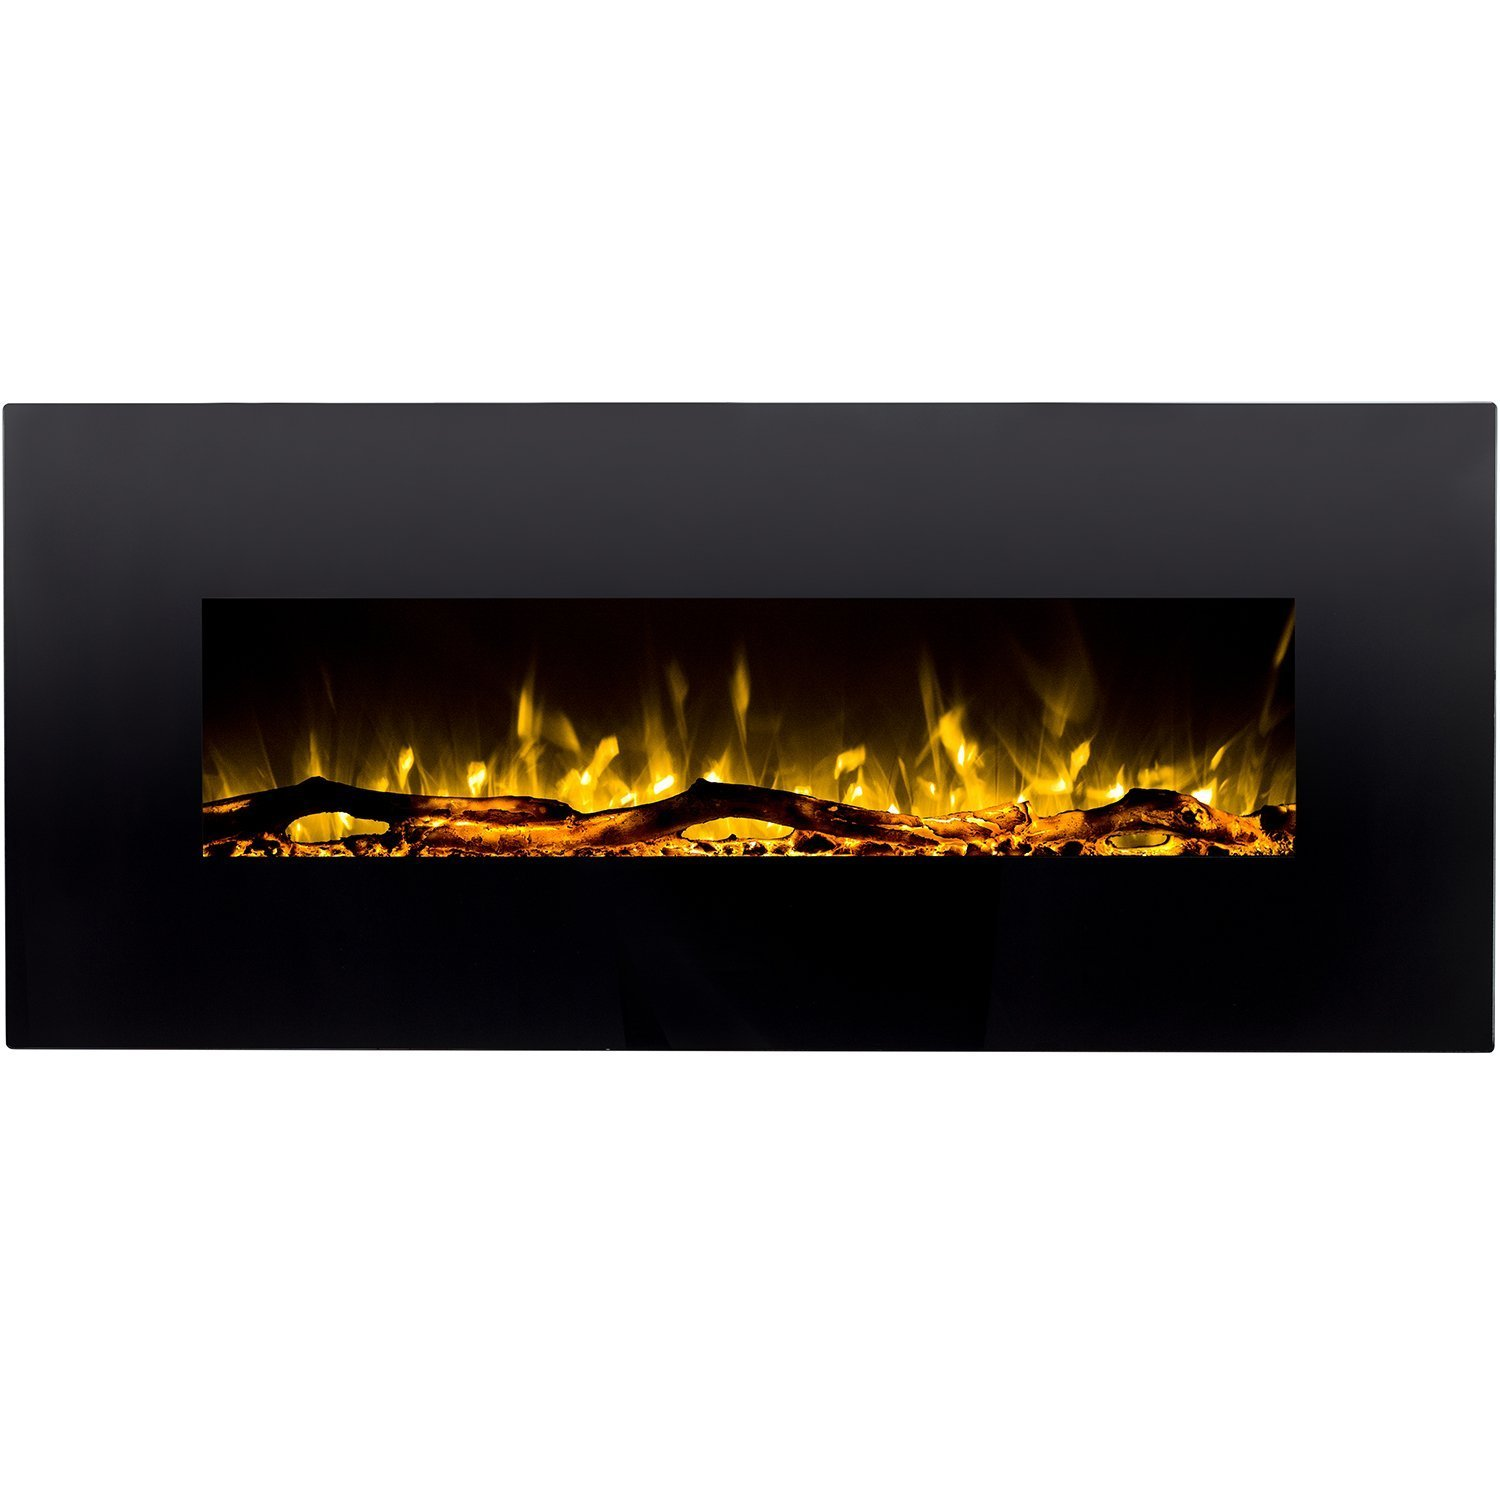 Regal Flame Denali Black 60 Log, Pebble, Crystal, 3 Color Heater Electric Wall Mounted Fireplace Better than Wood Fireplaces, Gas Logs, Fireplace Inserts, Gas Fireplaces, Space Heaters, Propane ''